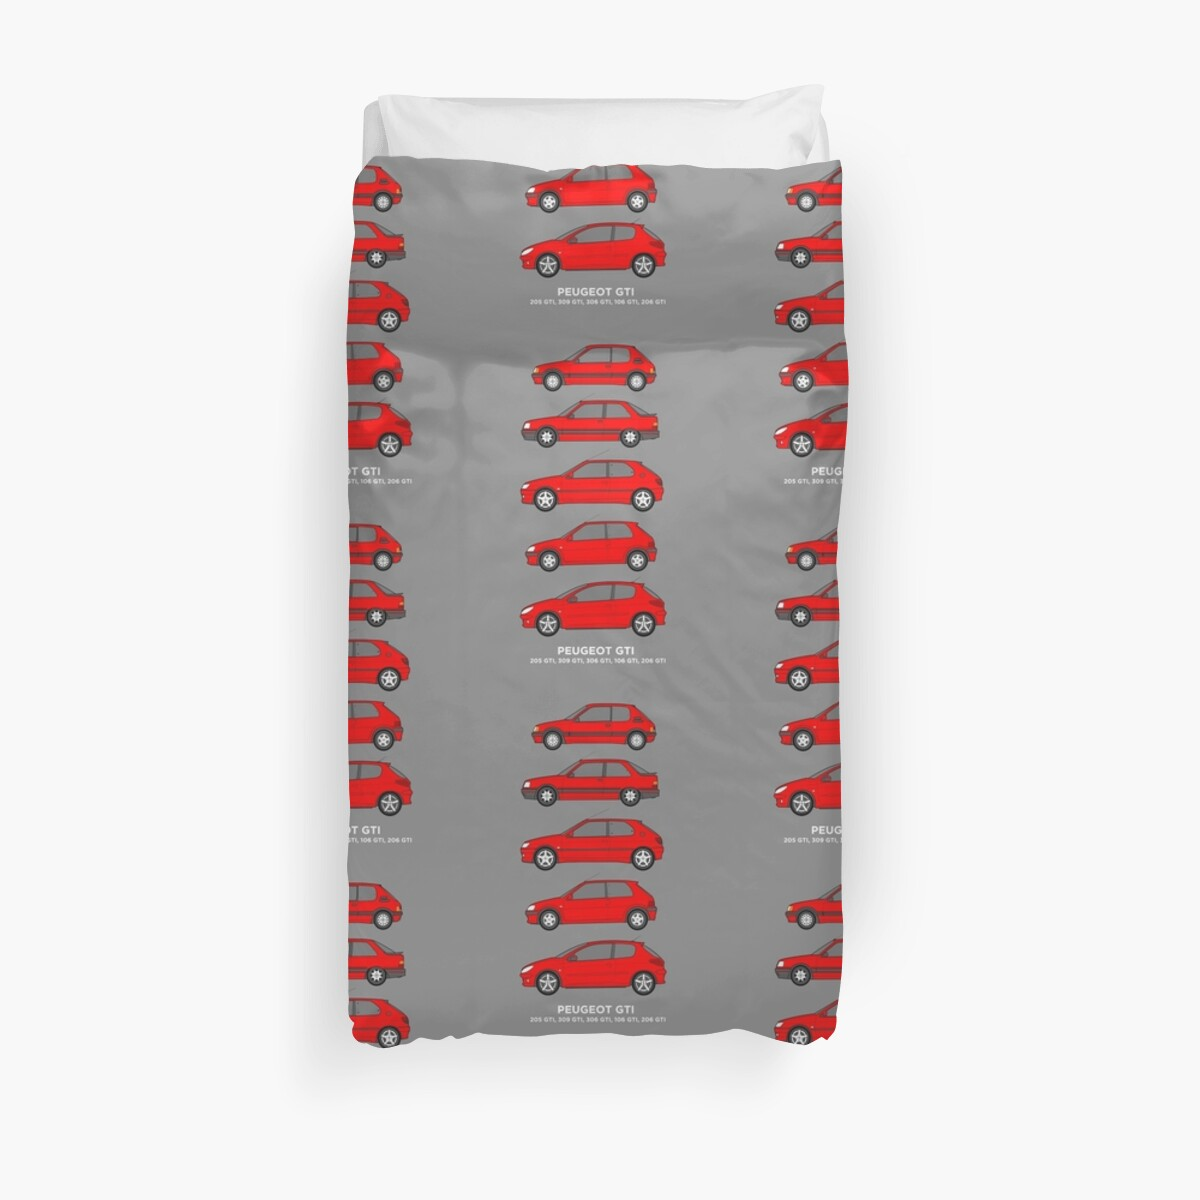 Peugeot GTI Hatchbacks Classic Car Outline Collection by RJWautographics